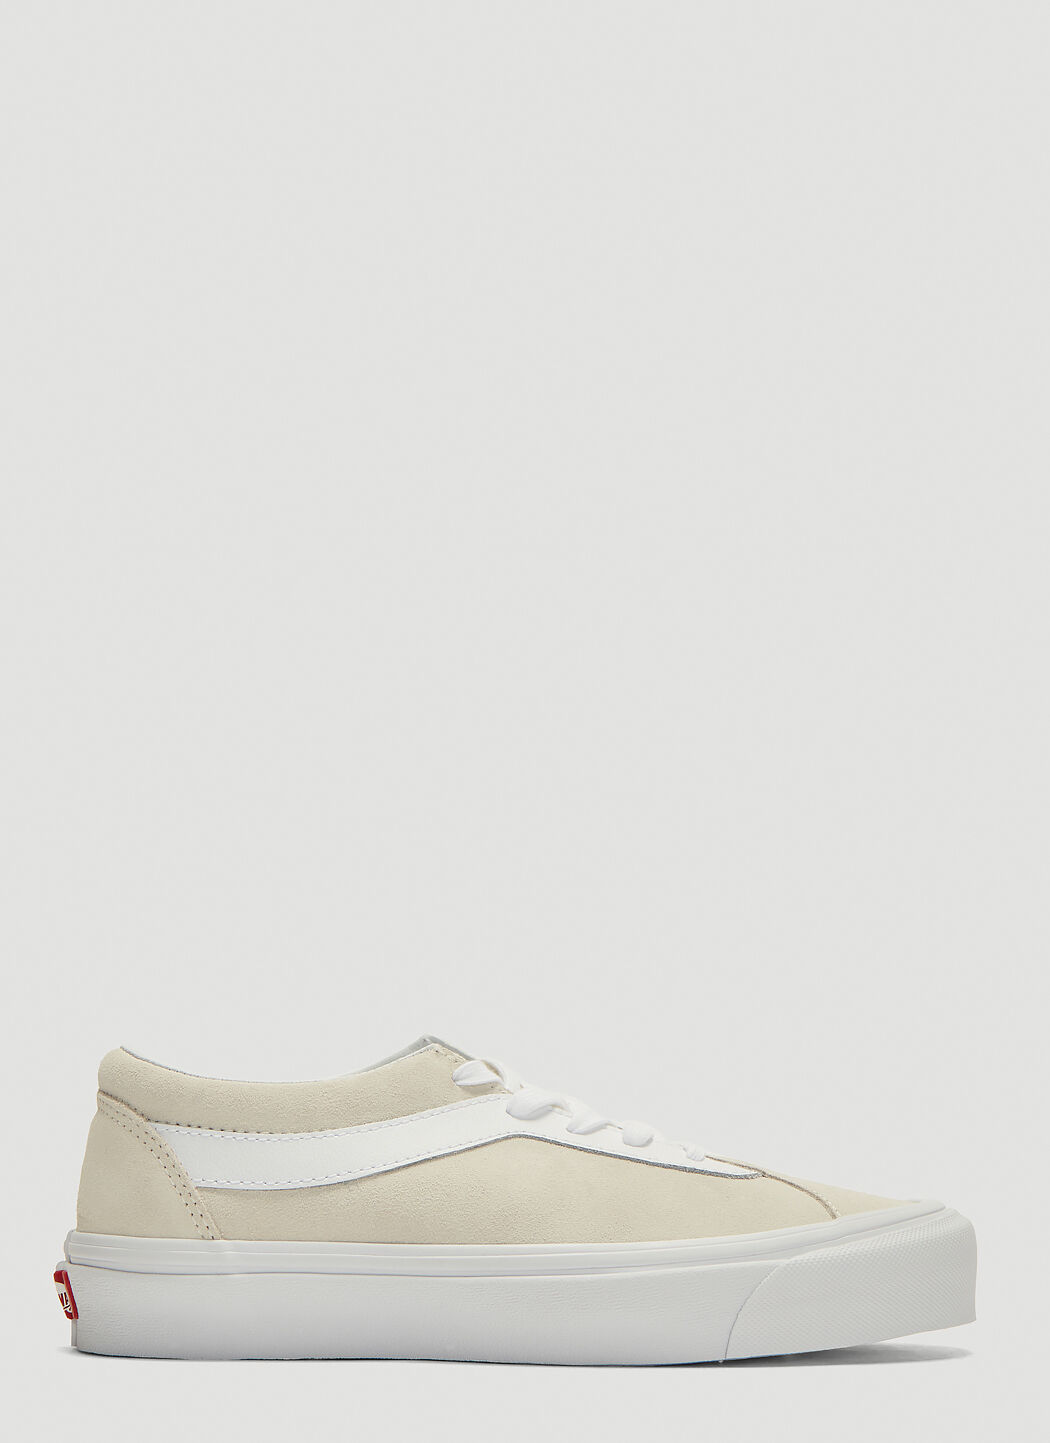 Vans Bold Ni Sneakers in White | LN CC